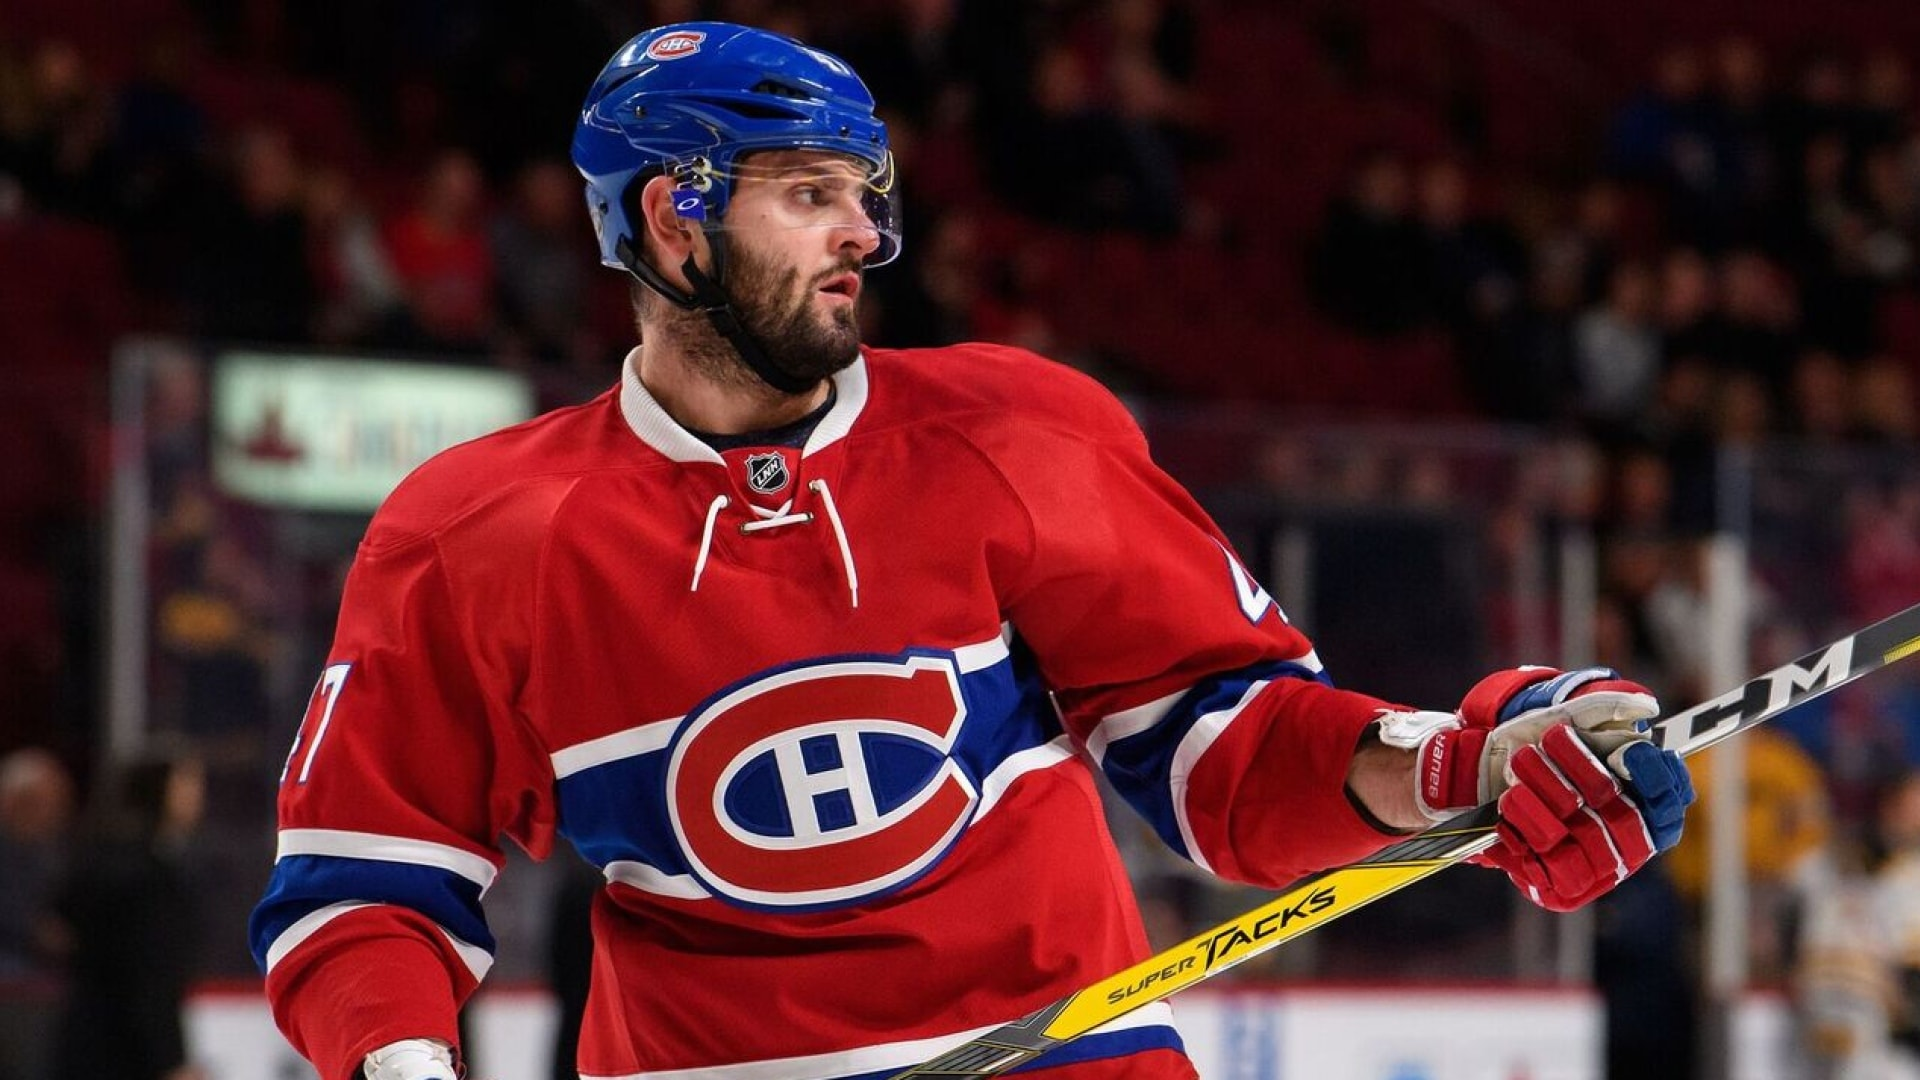 Alexander Radulov Wallpaper